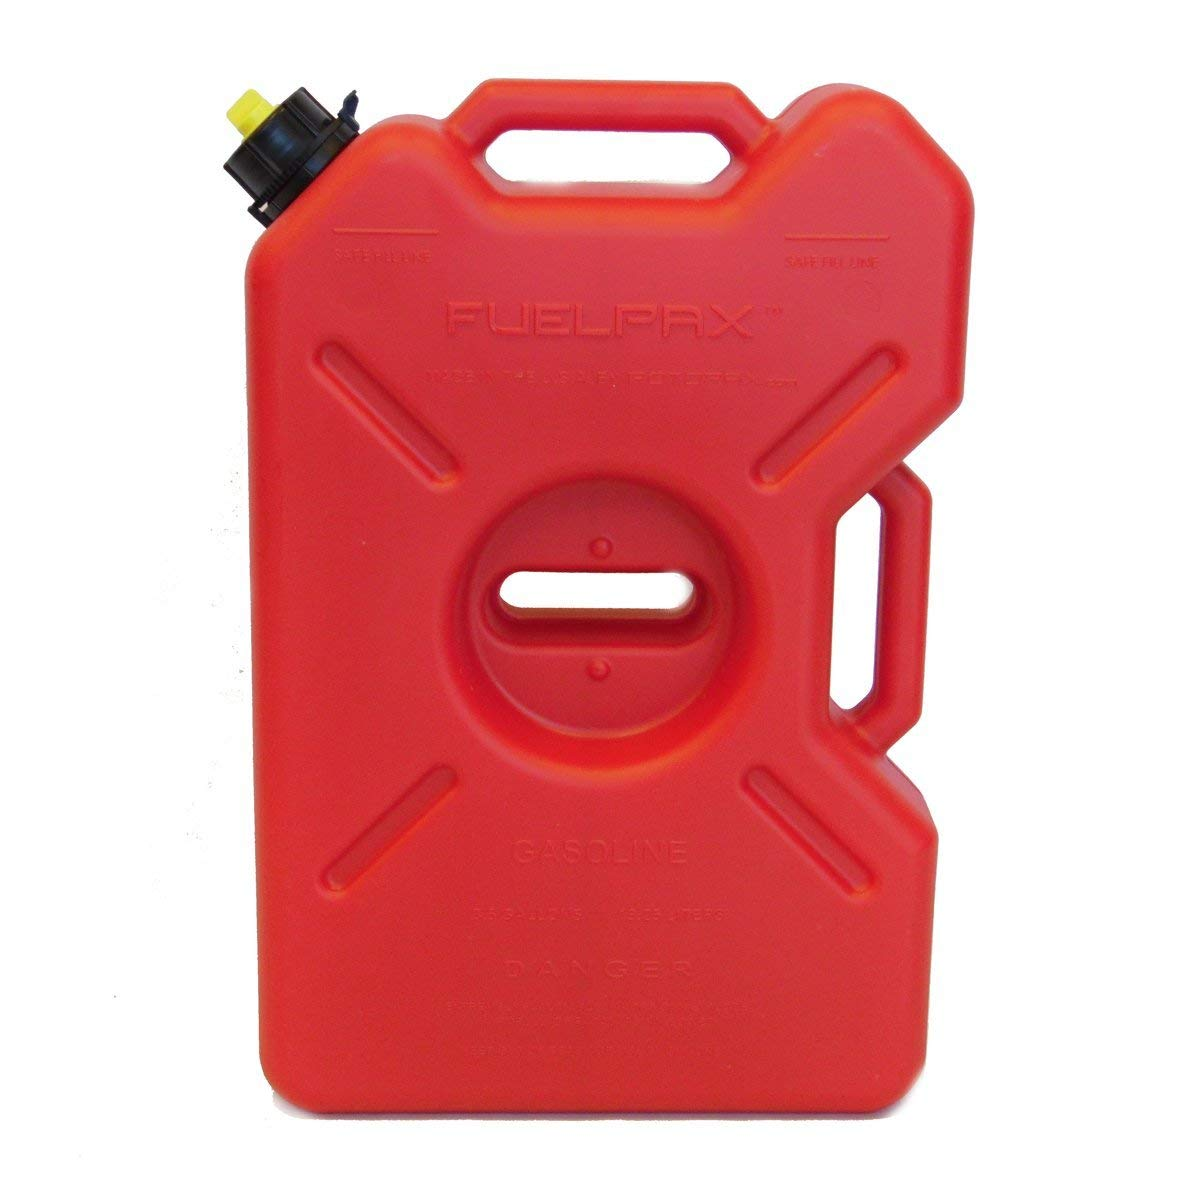 RotopaX FX-3.5 FuelpaX 3-1/2 Gallon Gas Can.